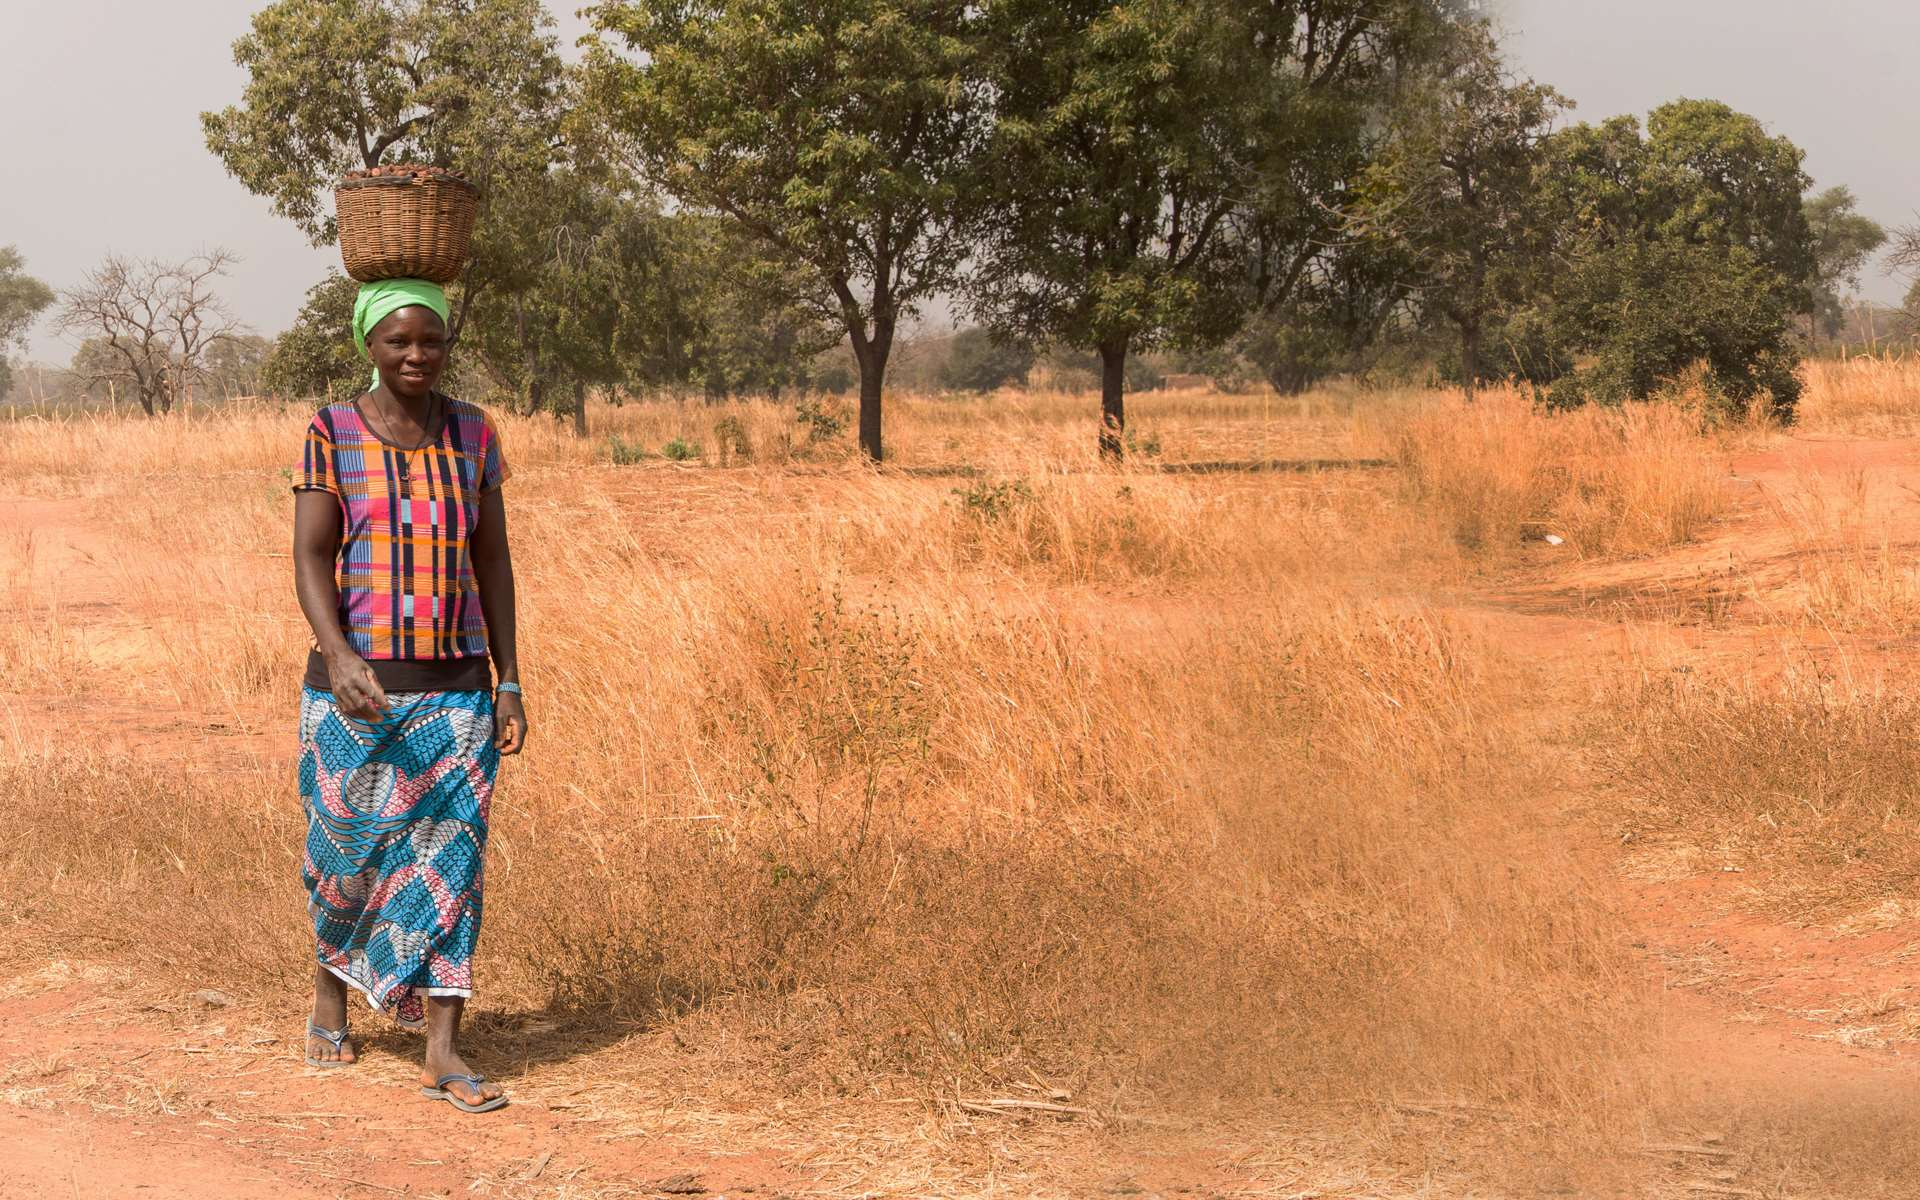 Sabine, a woman in Mali on Tree Aid's strengthening forest management project, walking through a degraded landscape with a bowl of shea nuts on her head.